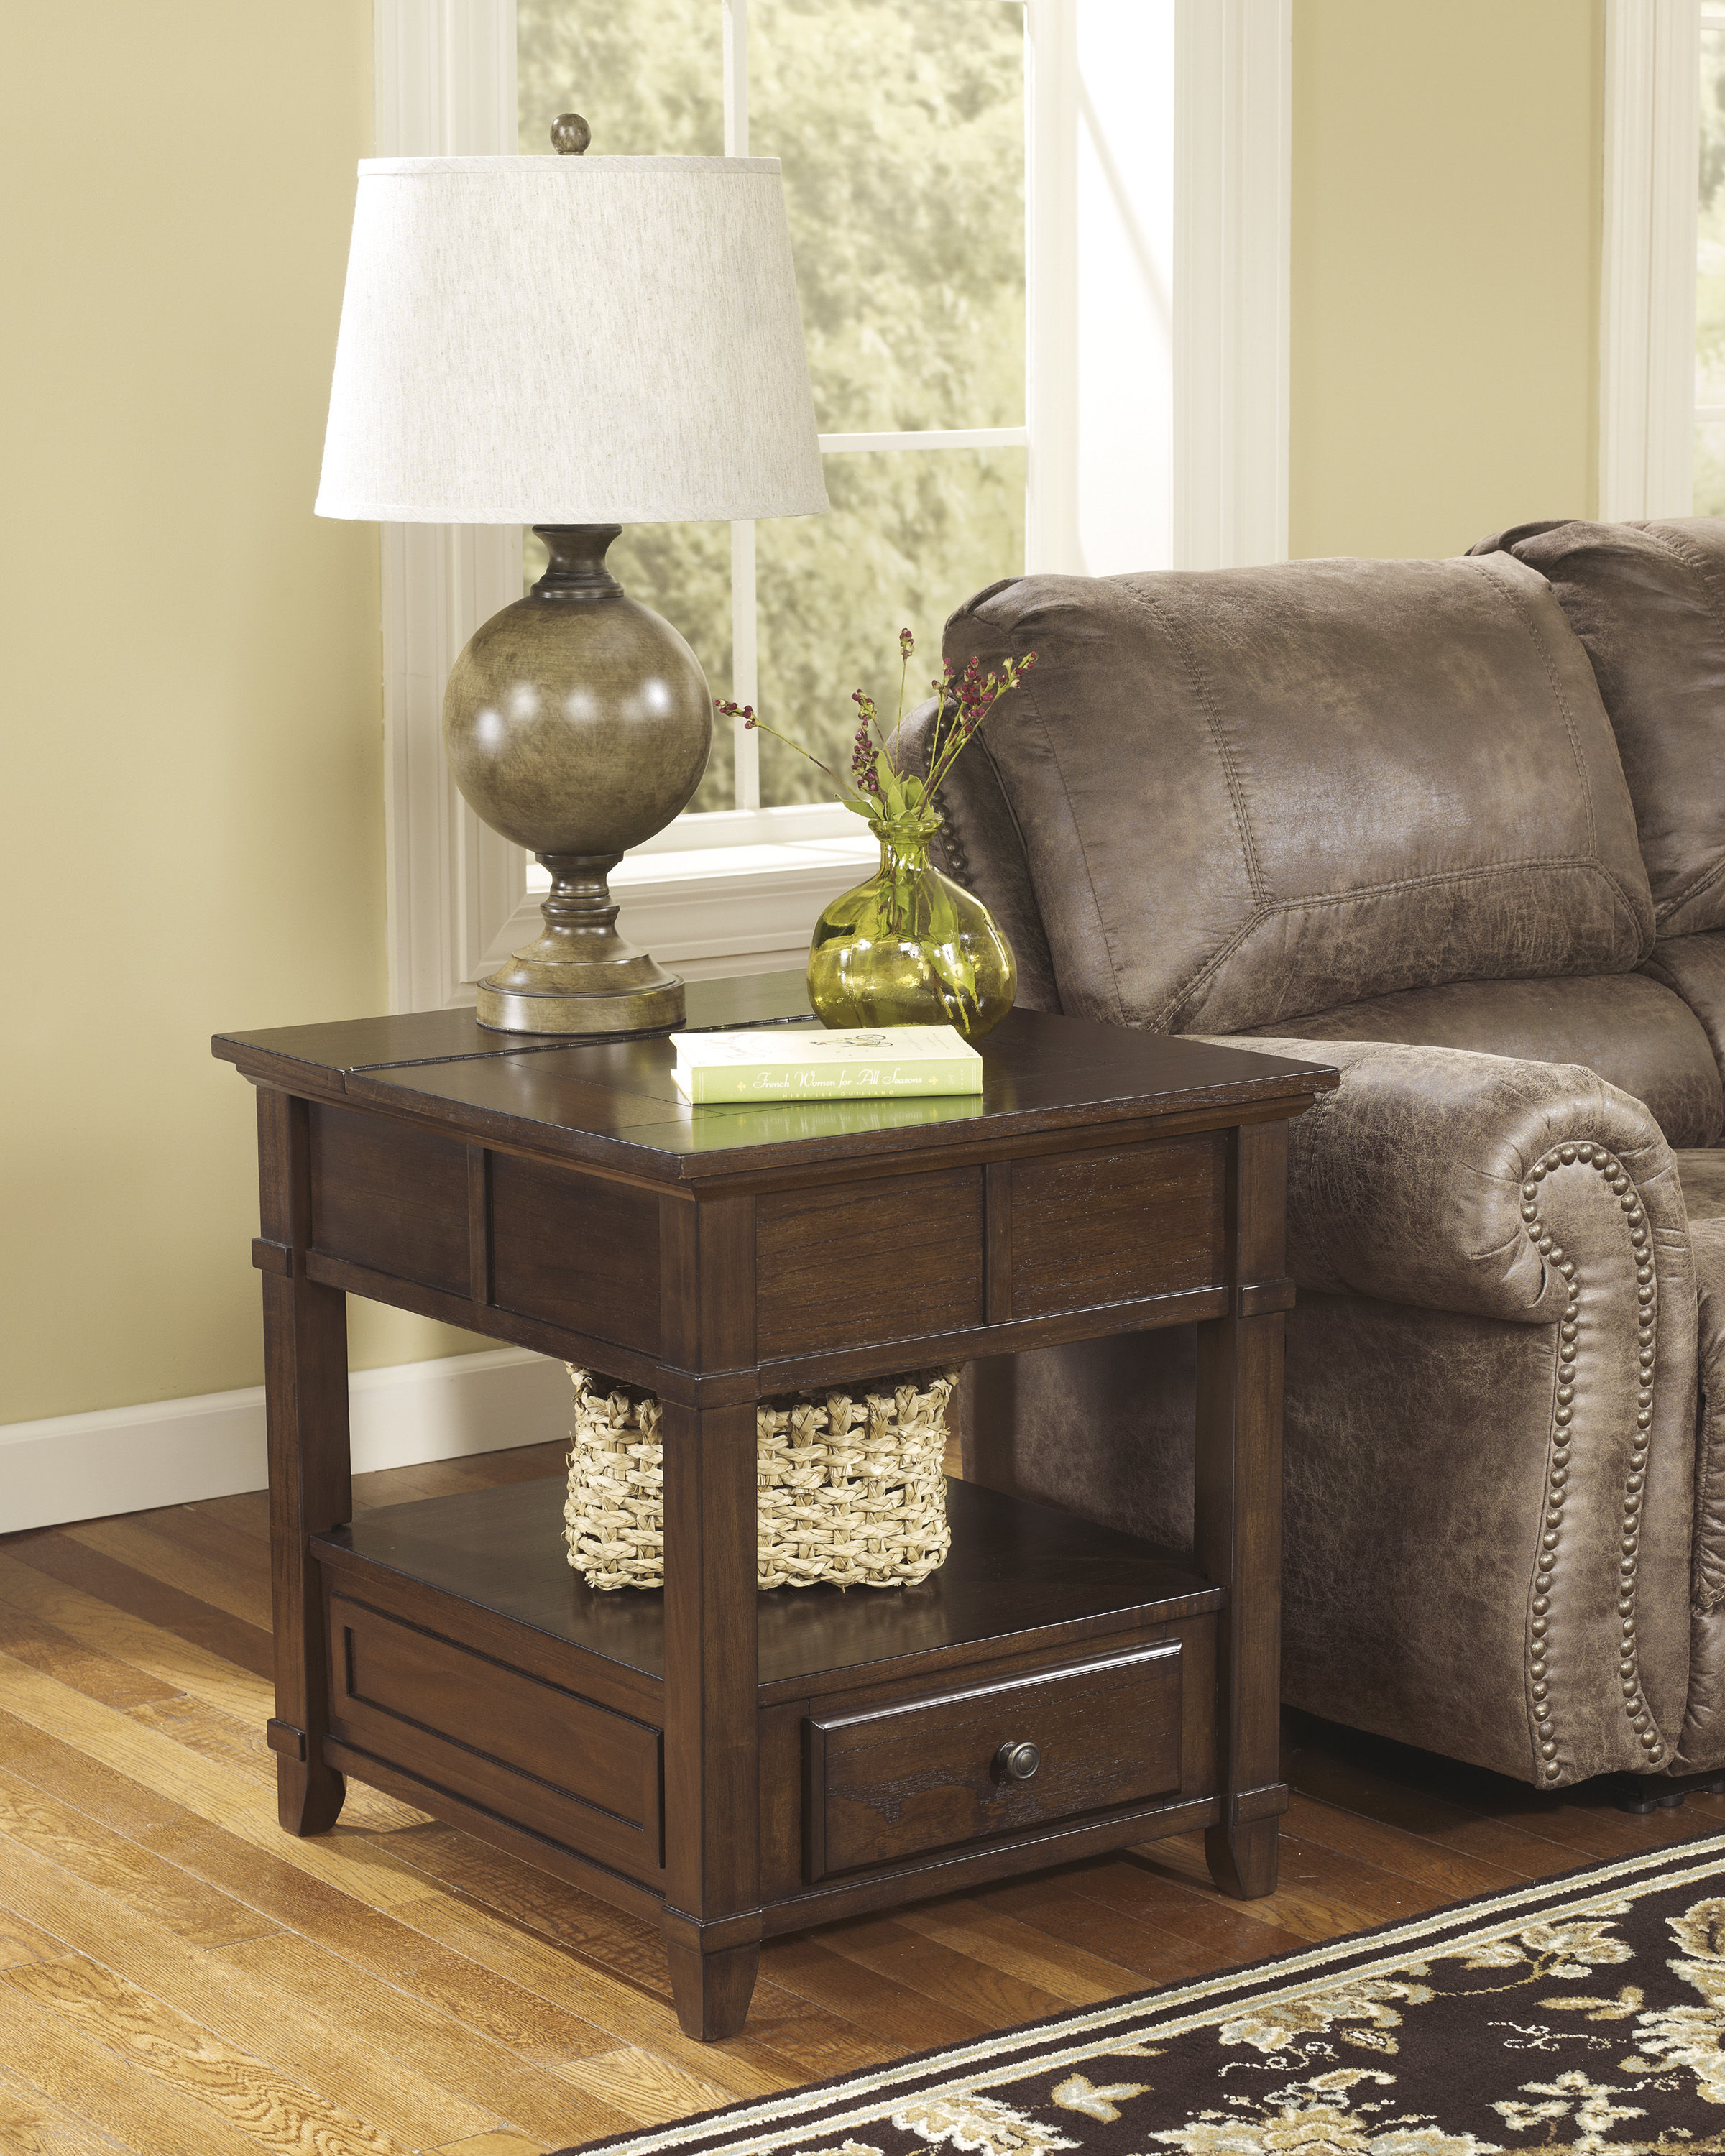 ashley furniture end tables Ashley Furniture Gately Brown End Table | The Classy Home ashley furniture end tables